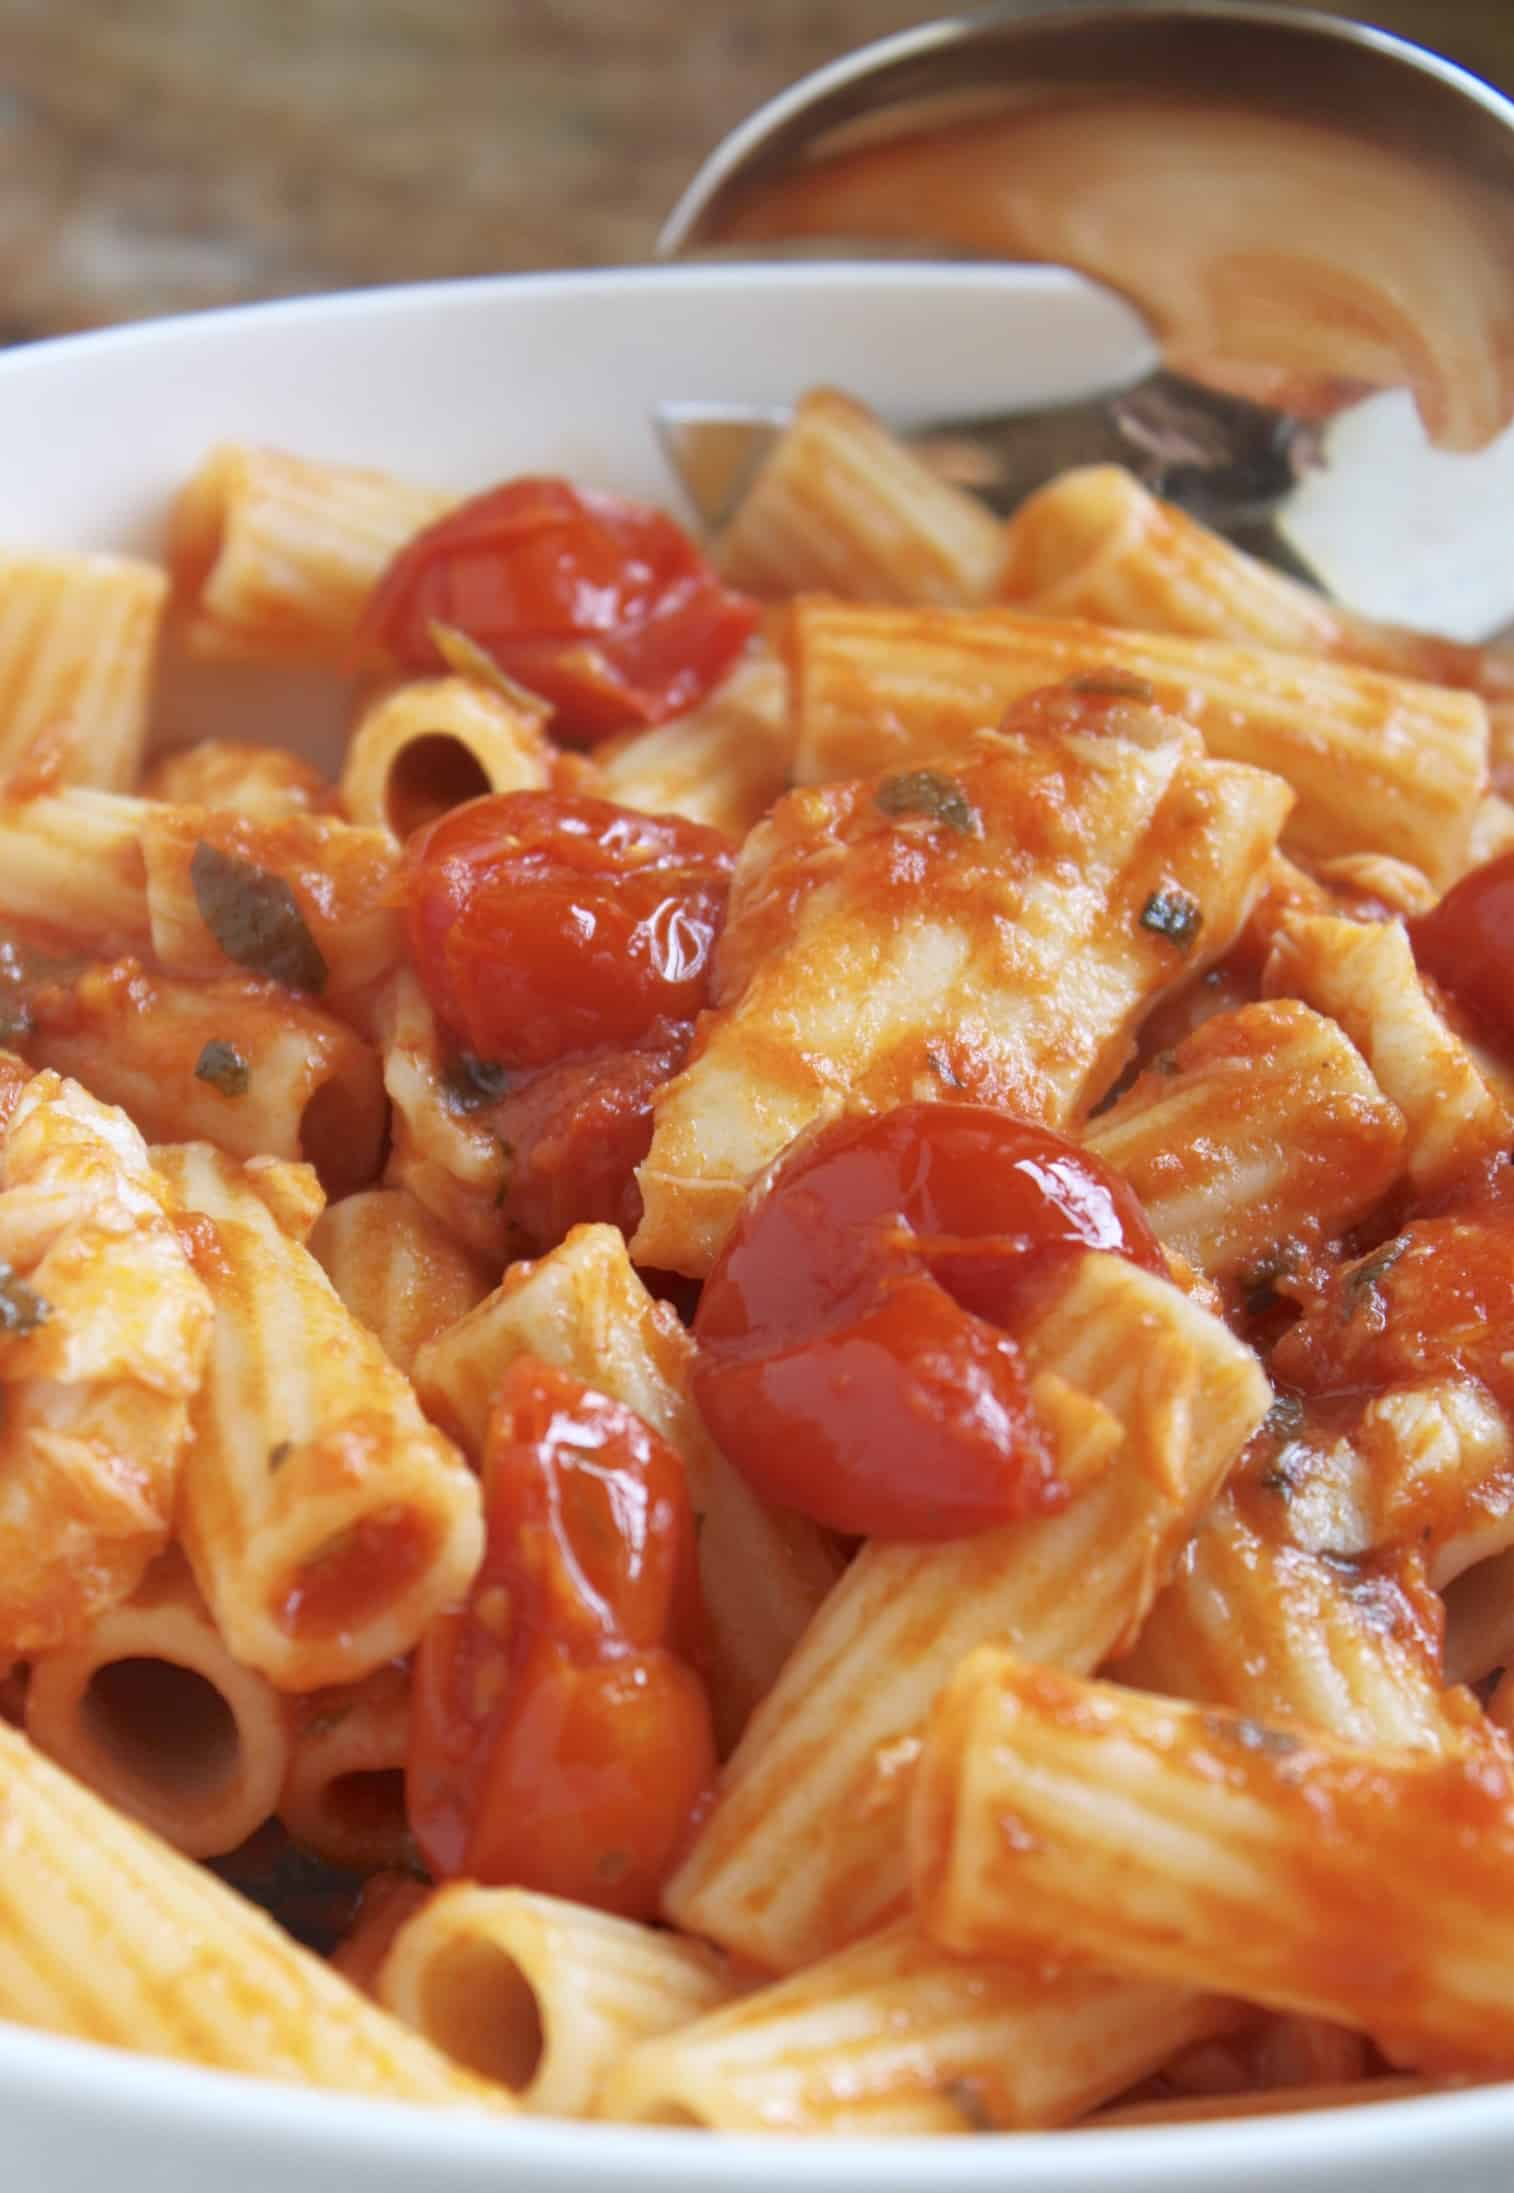 fish in tomato sauce with pasta